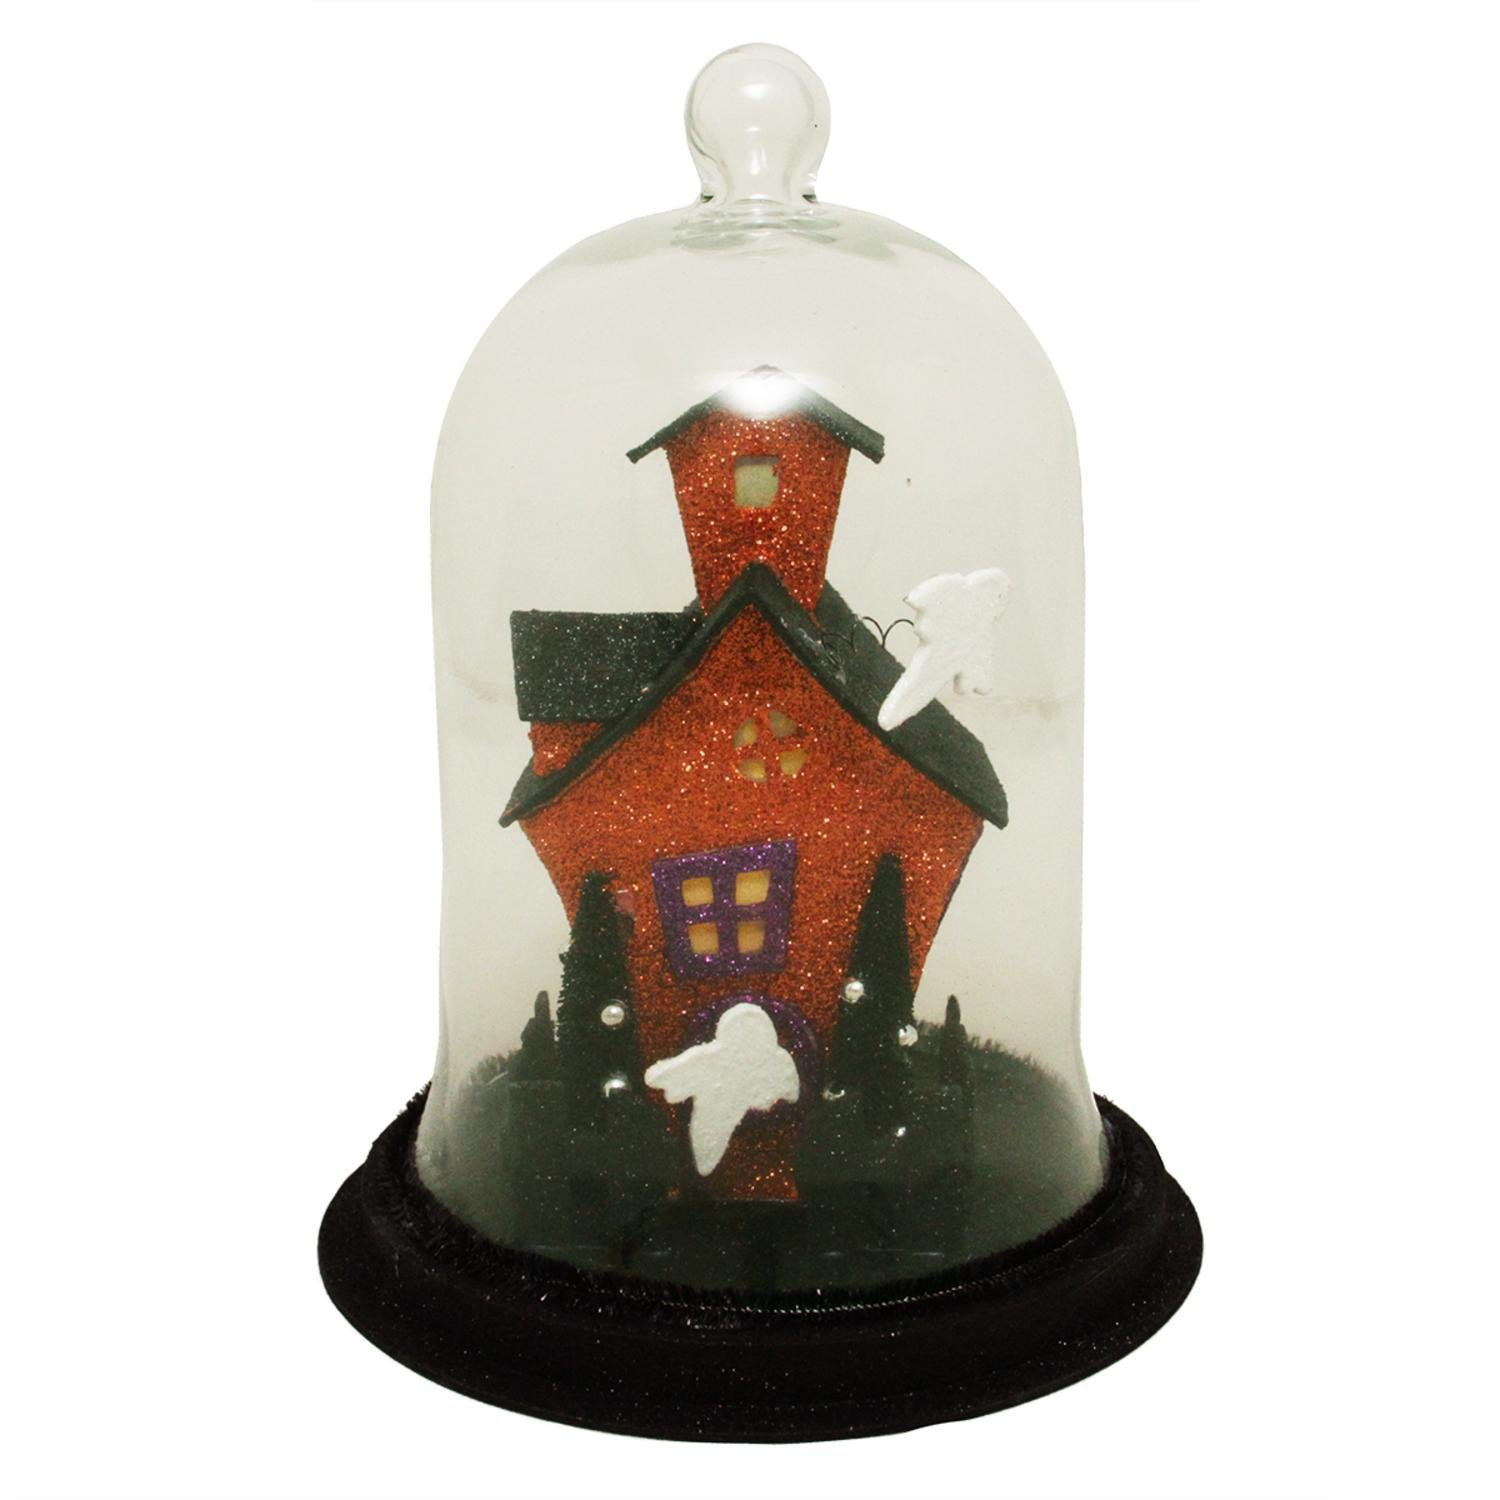 Allstate AAF664 BK OR 9 Lighted Spooky Haunted House with Ghosts Decorative Halloween Dome Cloche